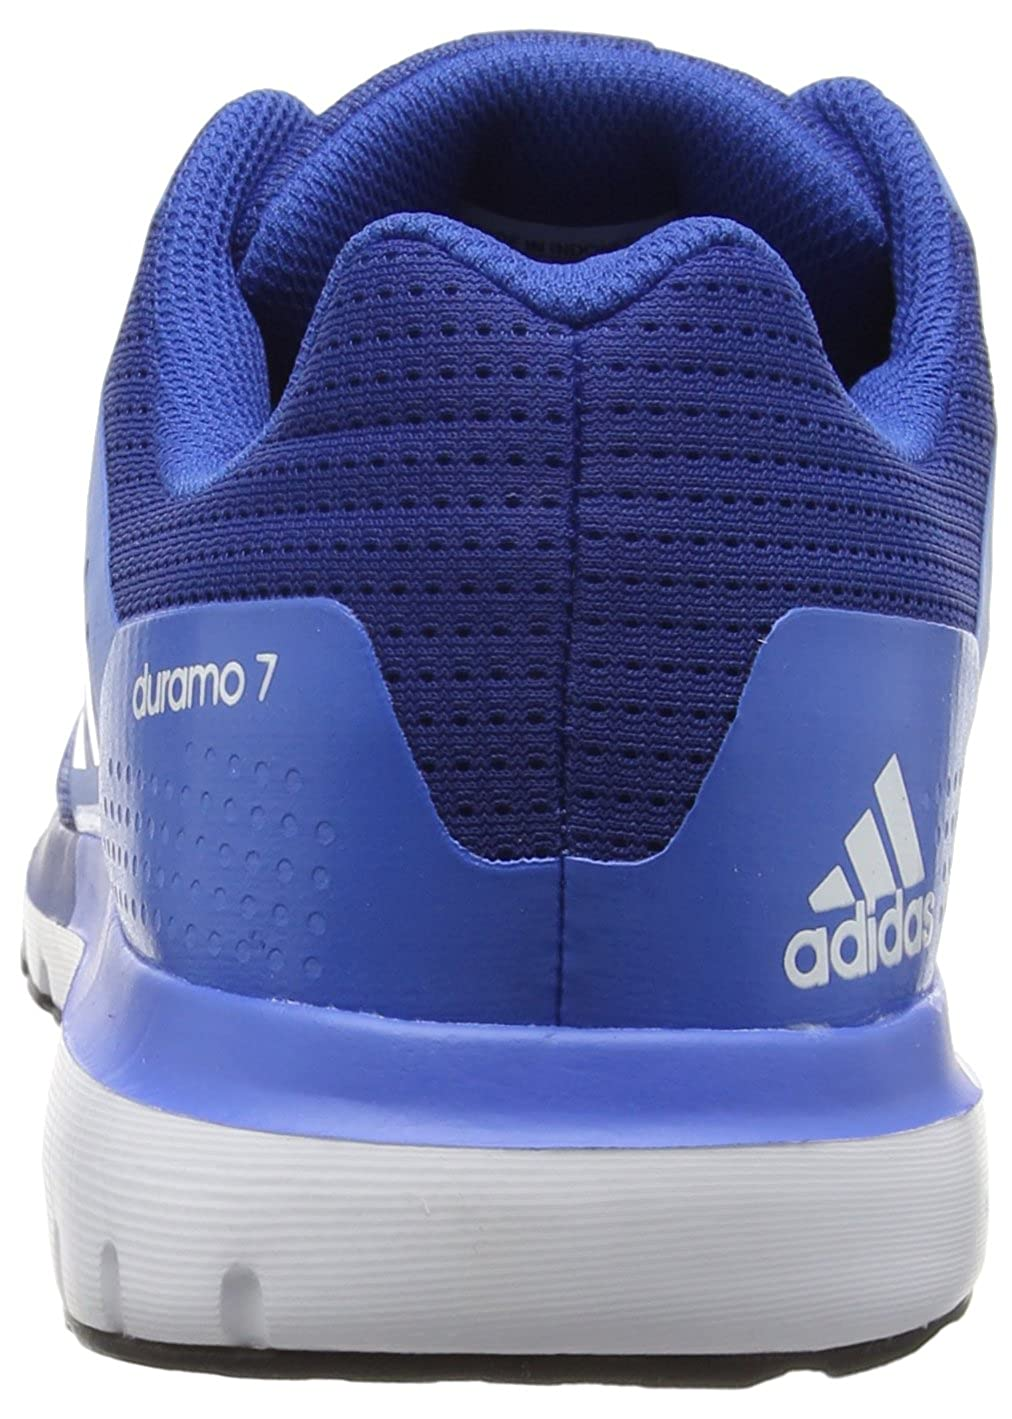 best website db34d c1320 adidas Duramo 7, Mens Running Shoes Amazon.co.uk Shoes  Bags